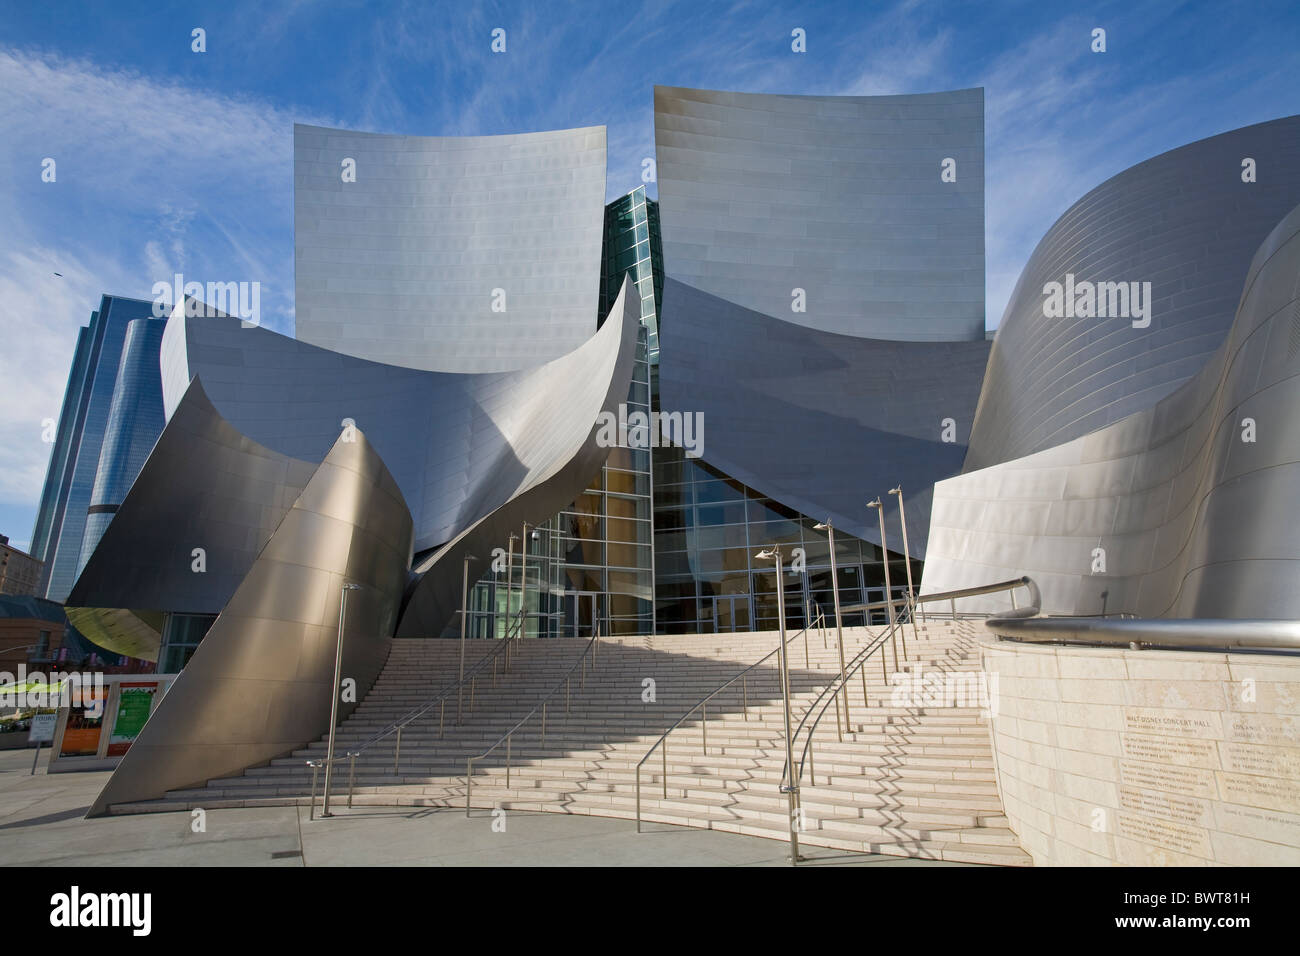 Walt Disney Concert Hall by Frank Gehry, Los Angeles Music Center, Grand Avenue, Downtown Los Angeles, California, - Stock Image